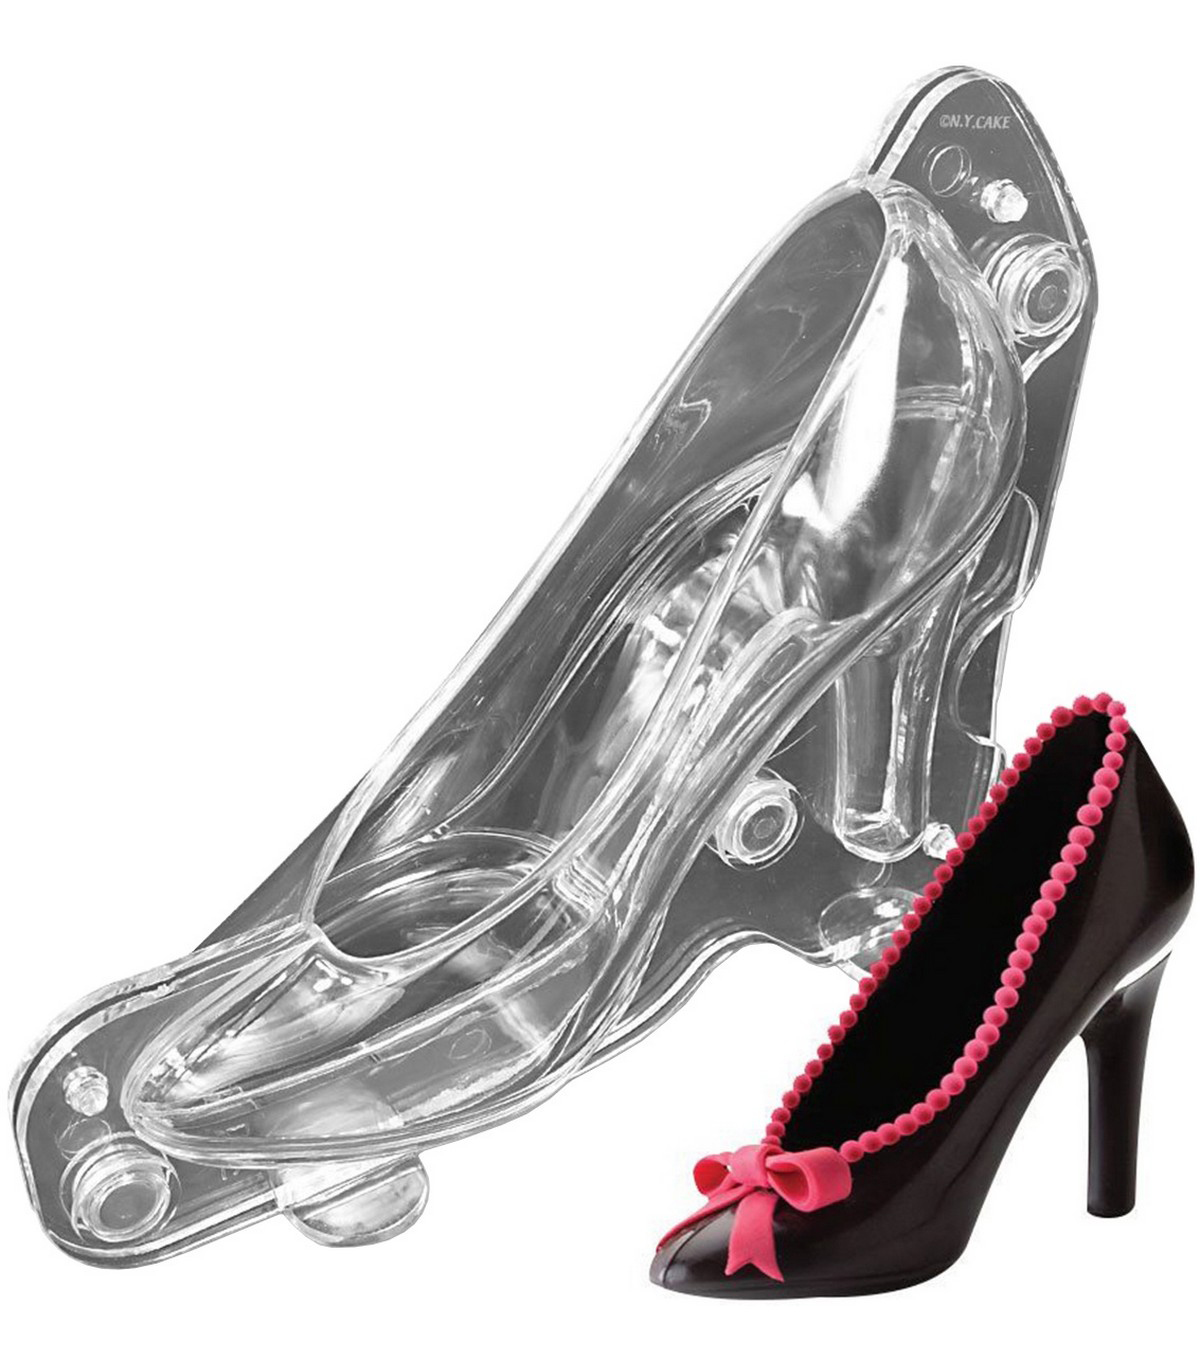 NY Cake 3D Polycarbonate Chocolate Mold-Stiletto High Heel Shoe